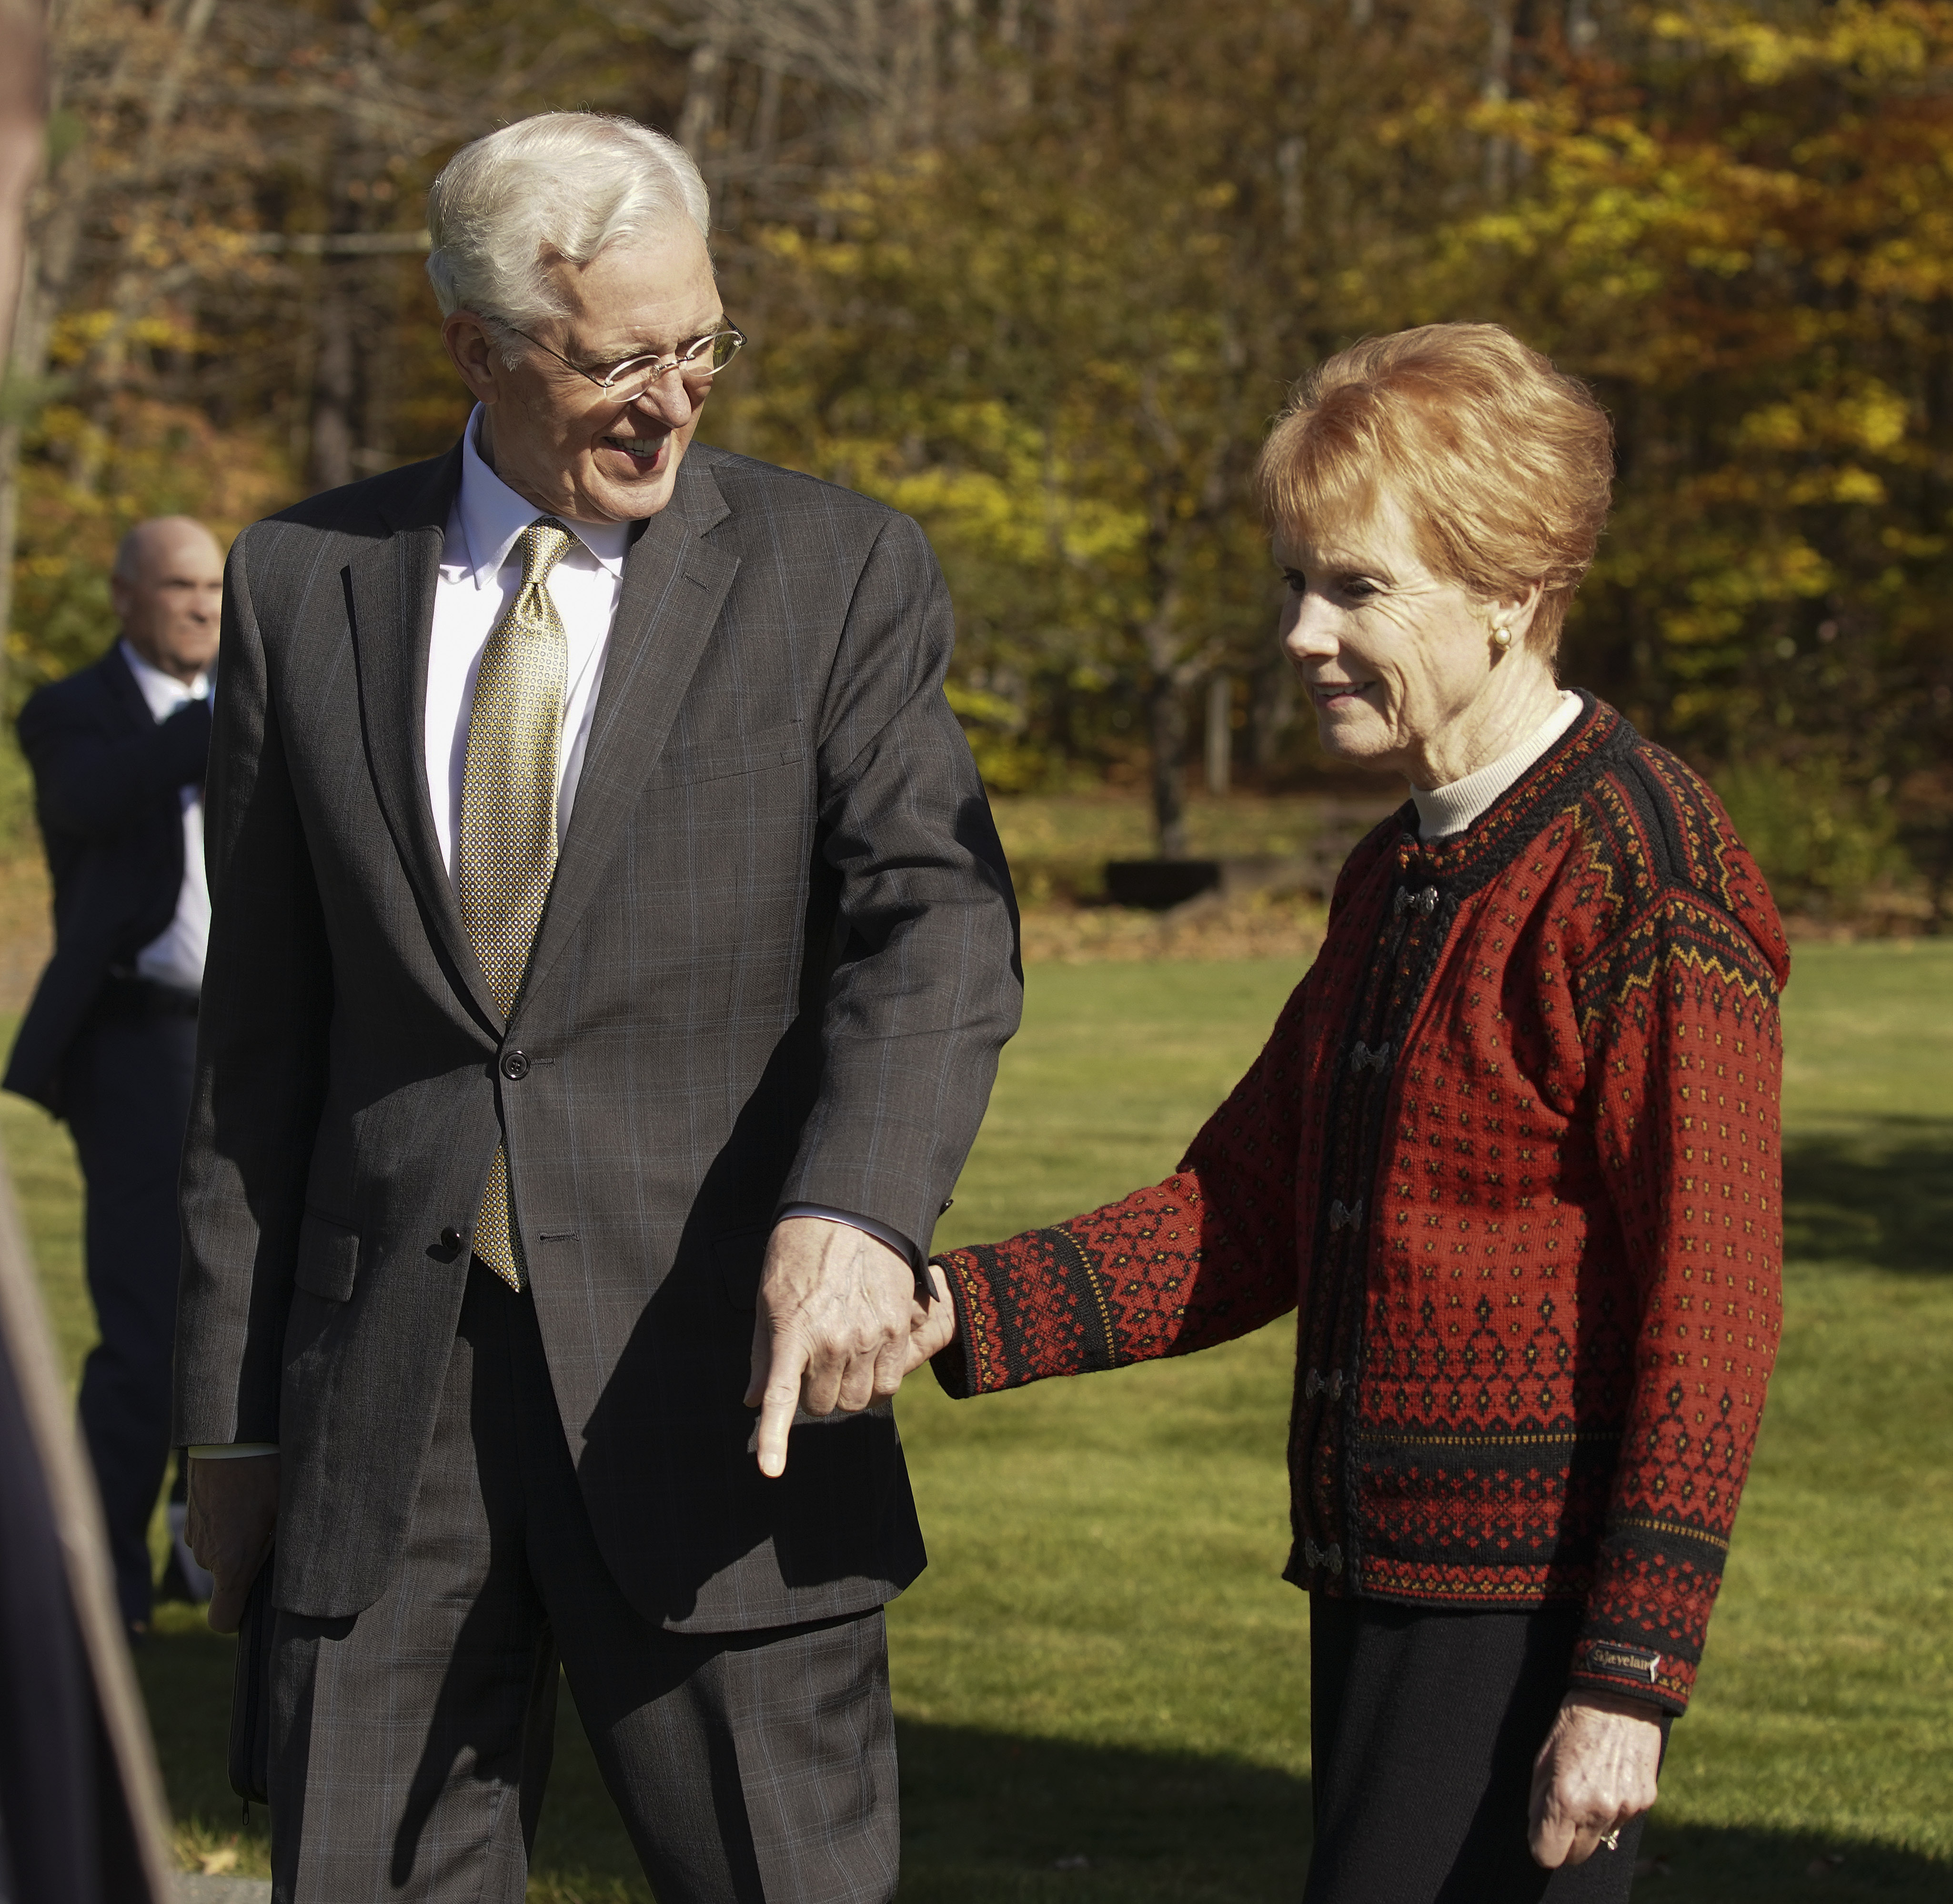 Elder D. Todd Christofferson of the Quorum of the Twelve Apostles of The Church of Jesus Christ of Latter-day Saints, holds hands with his wife, Sister Kathy Christofferson, at the Joseph Smith Birthplace Memorial in Sharon, Vt., on Saturday, Oct. 19, 2019.